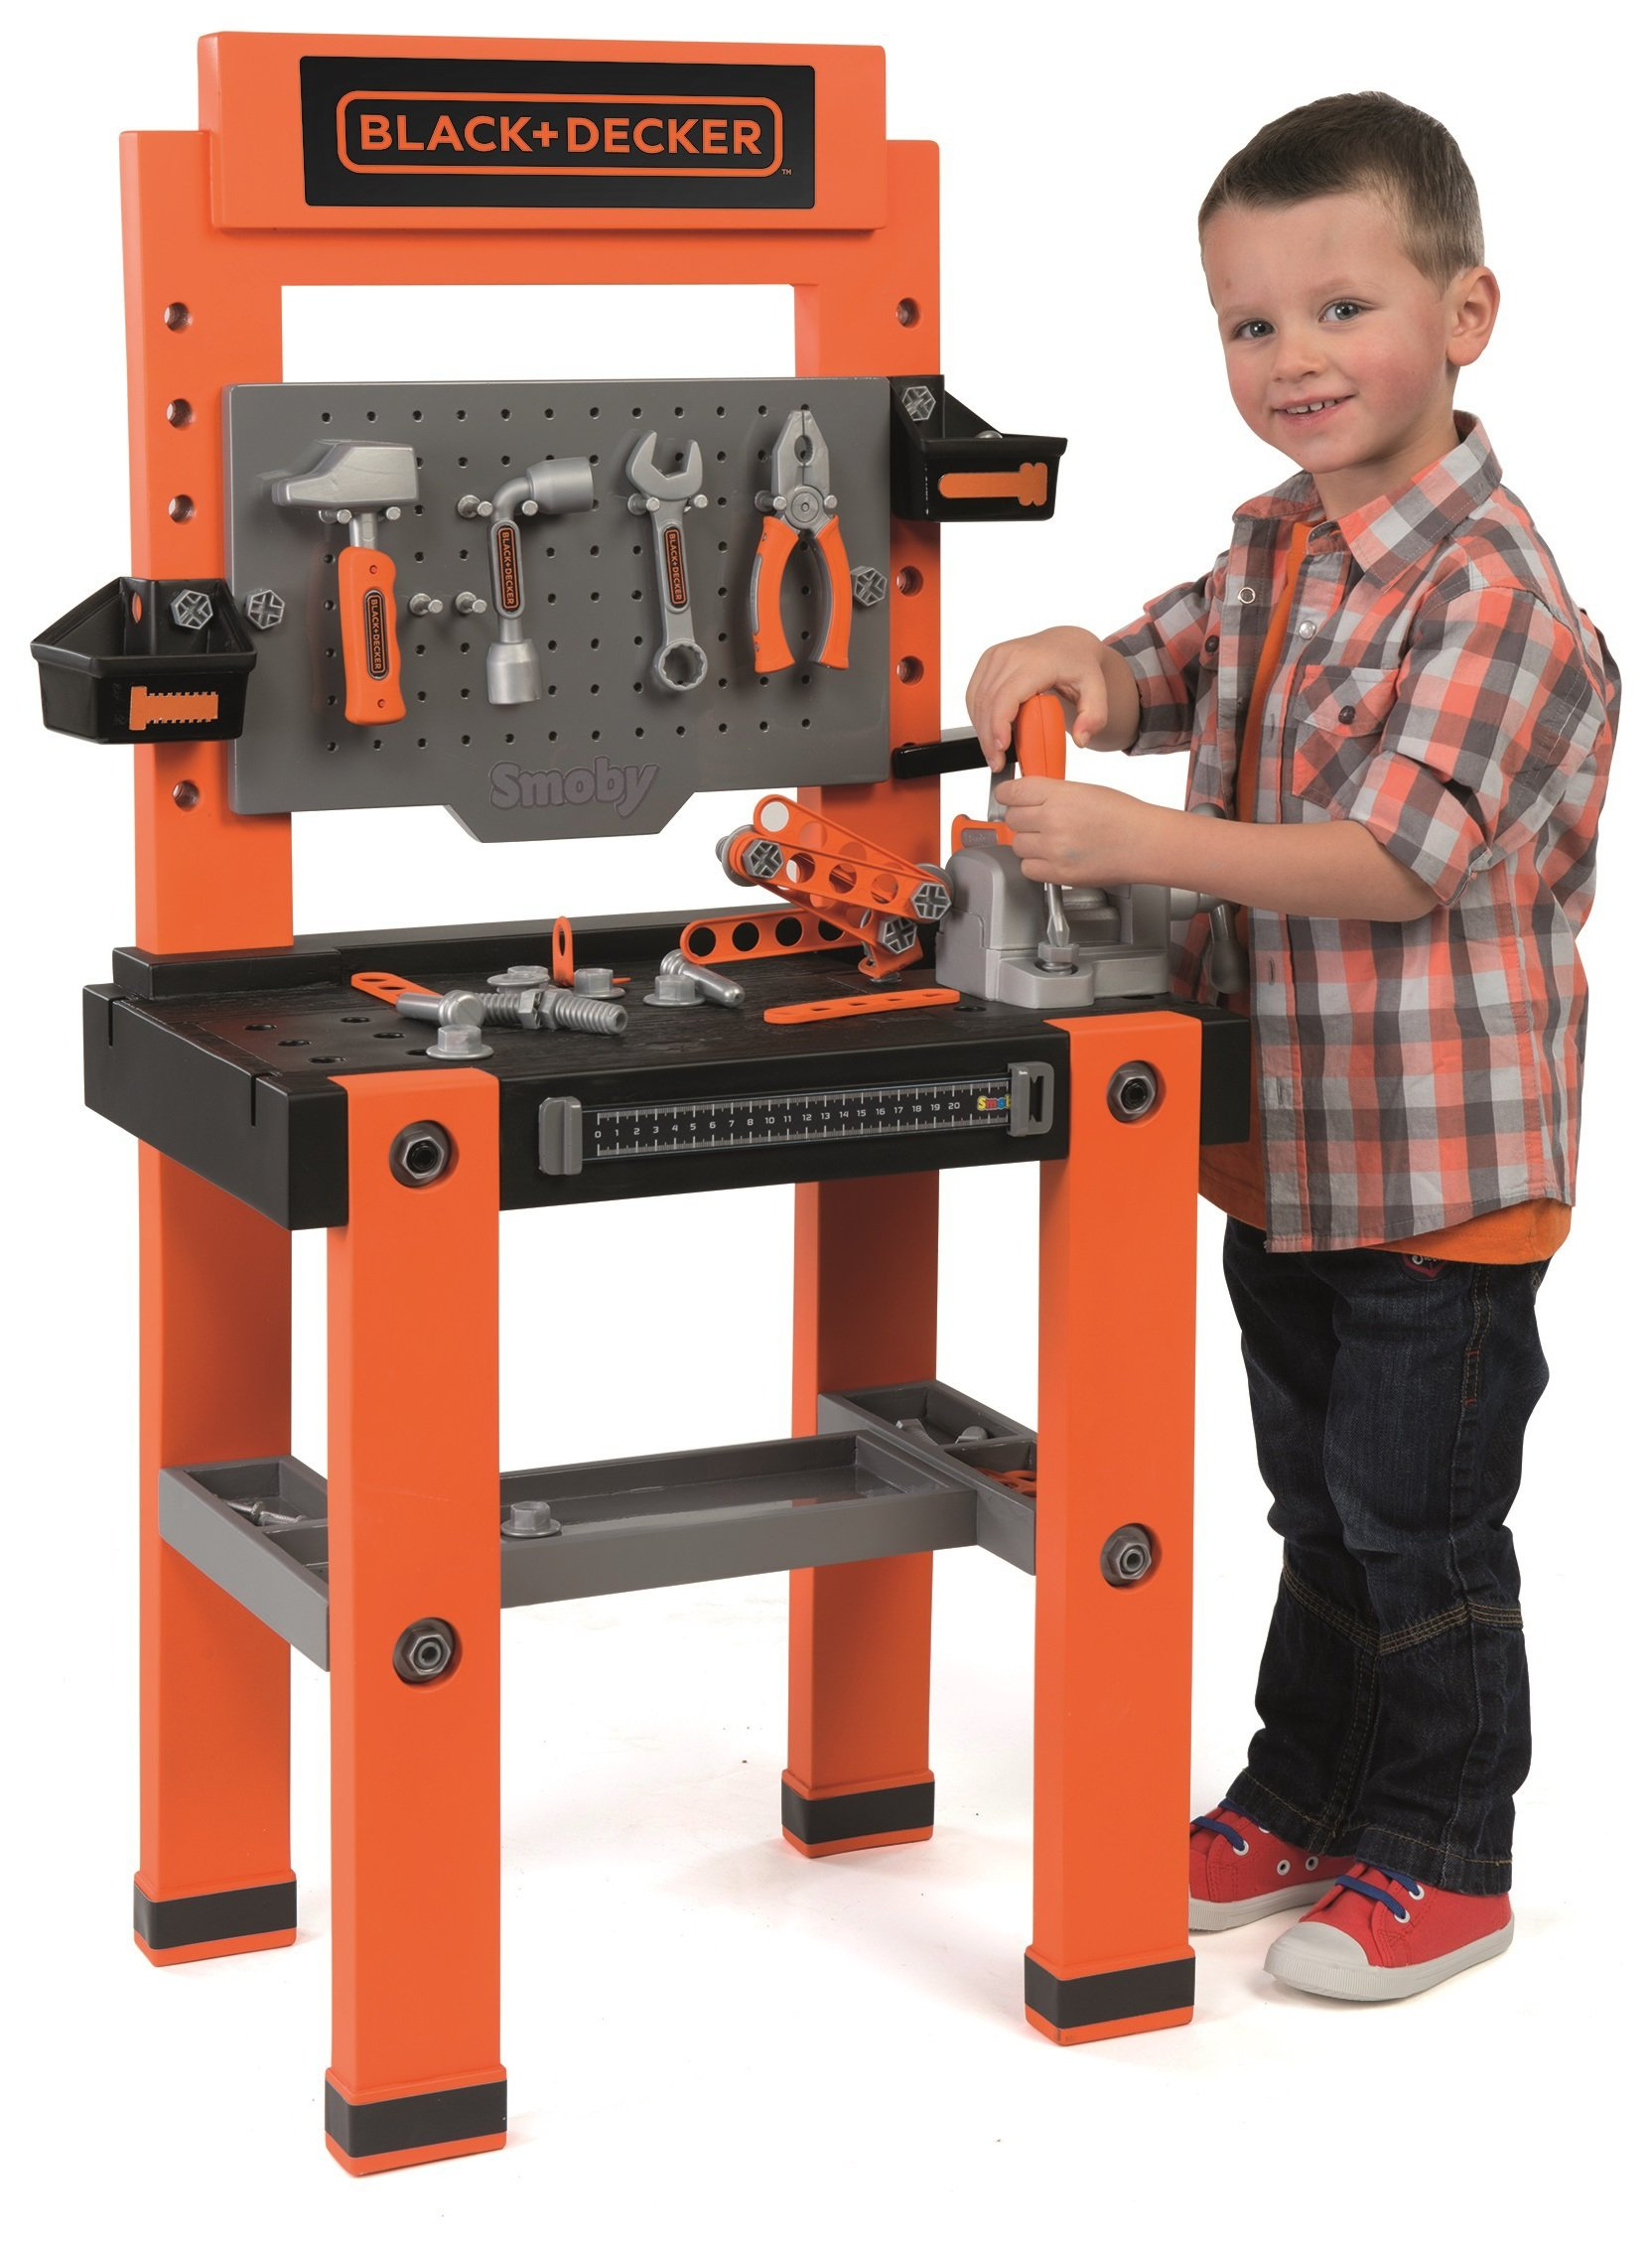 black and decker tools. smoby black \u0026 decker tool bench and tools a